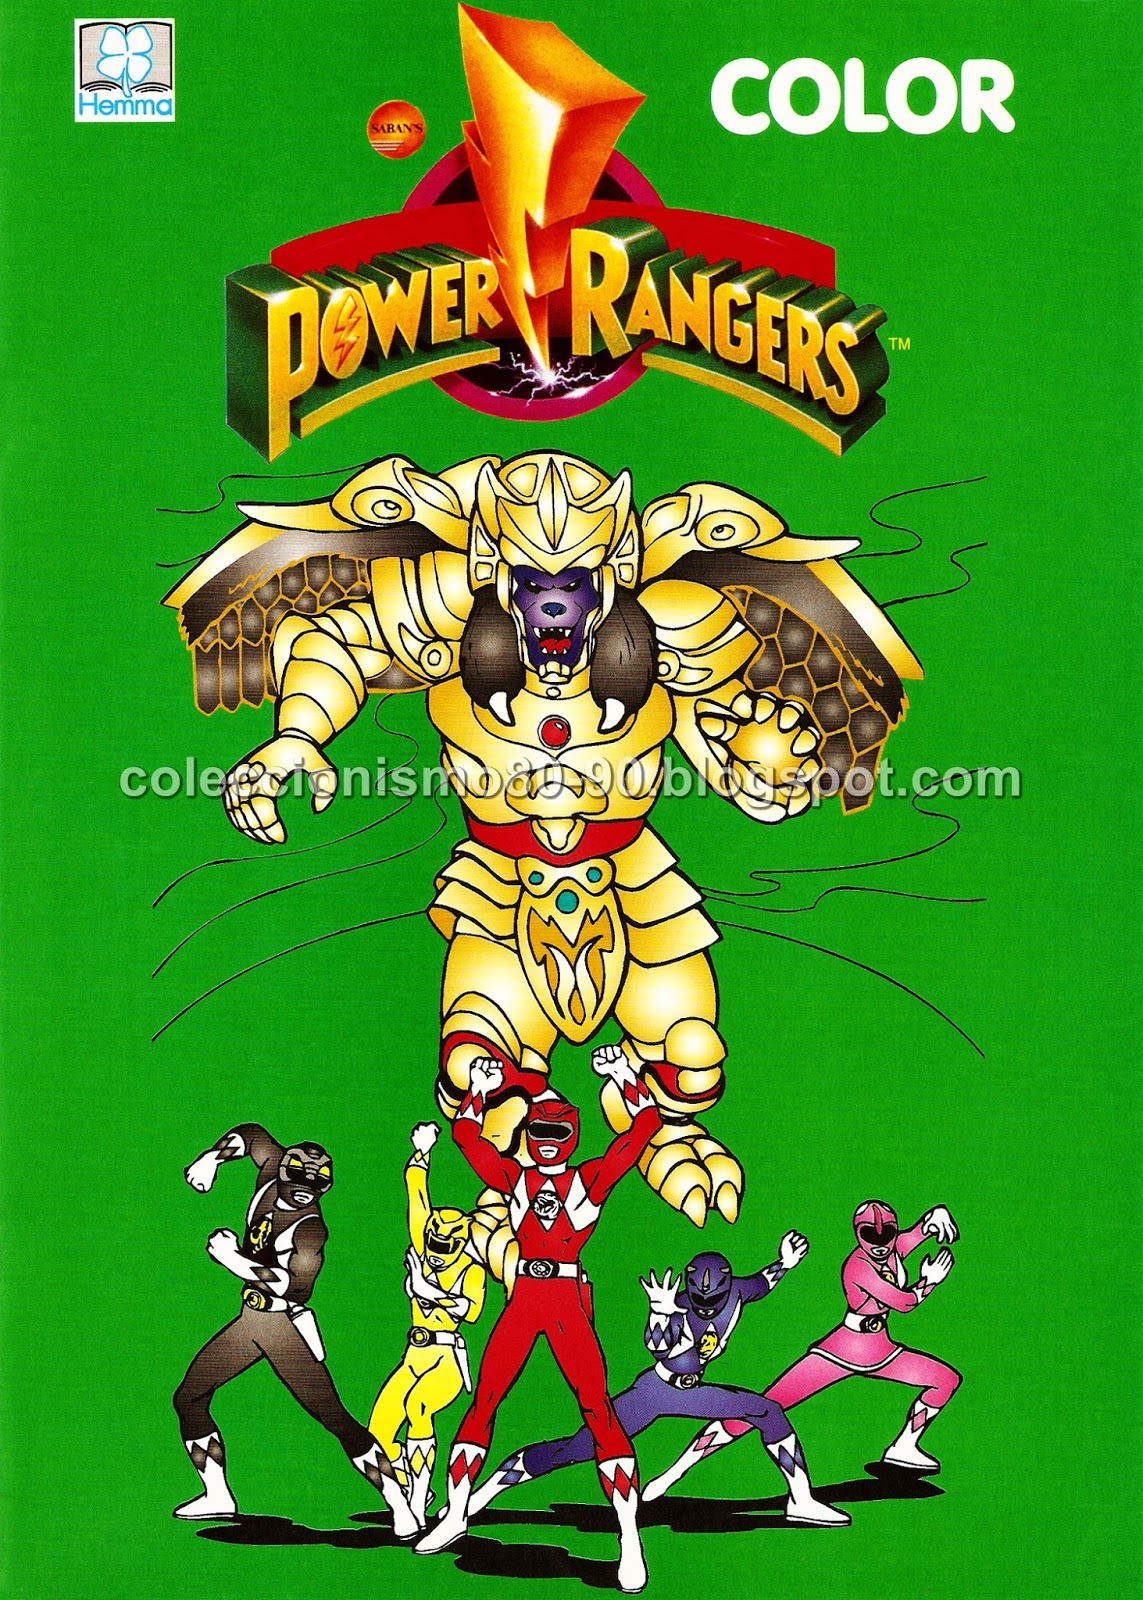 Coleccionismo 80-90: POWER RANGERS: LIBRO PARA COLOREAR